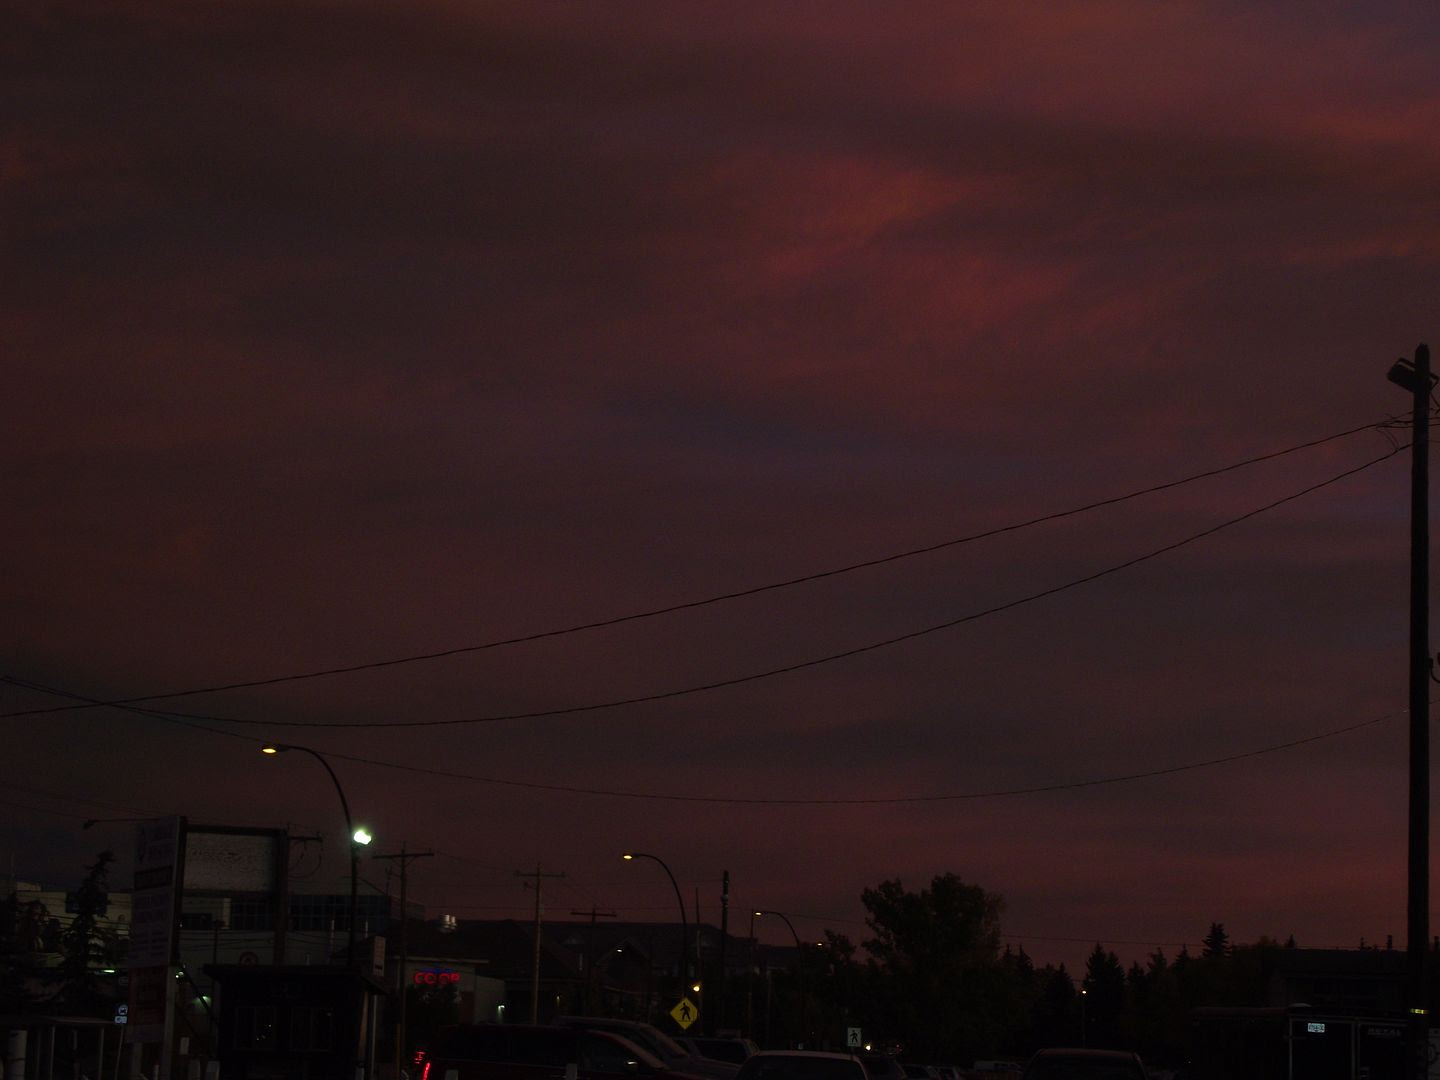 02.21, Date night with hubby. The colours in the sky just took my breath away.